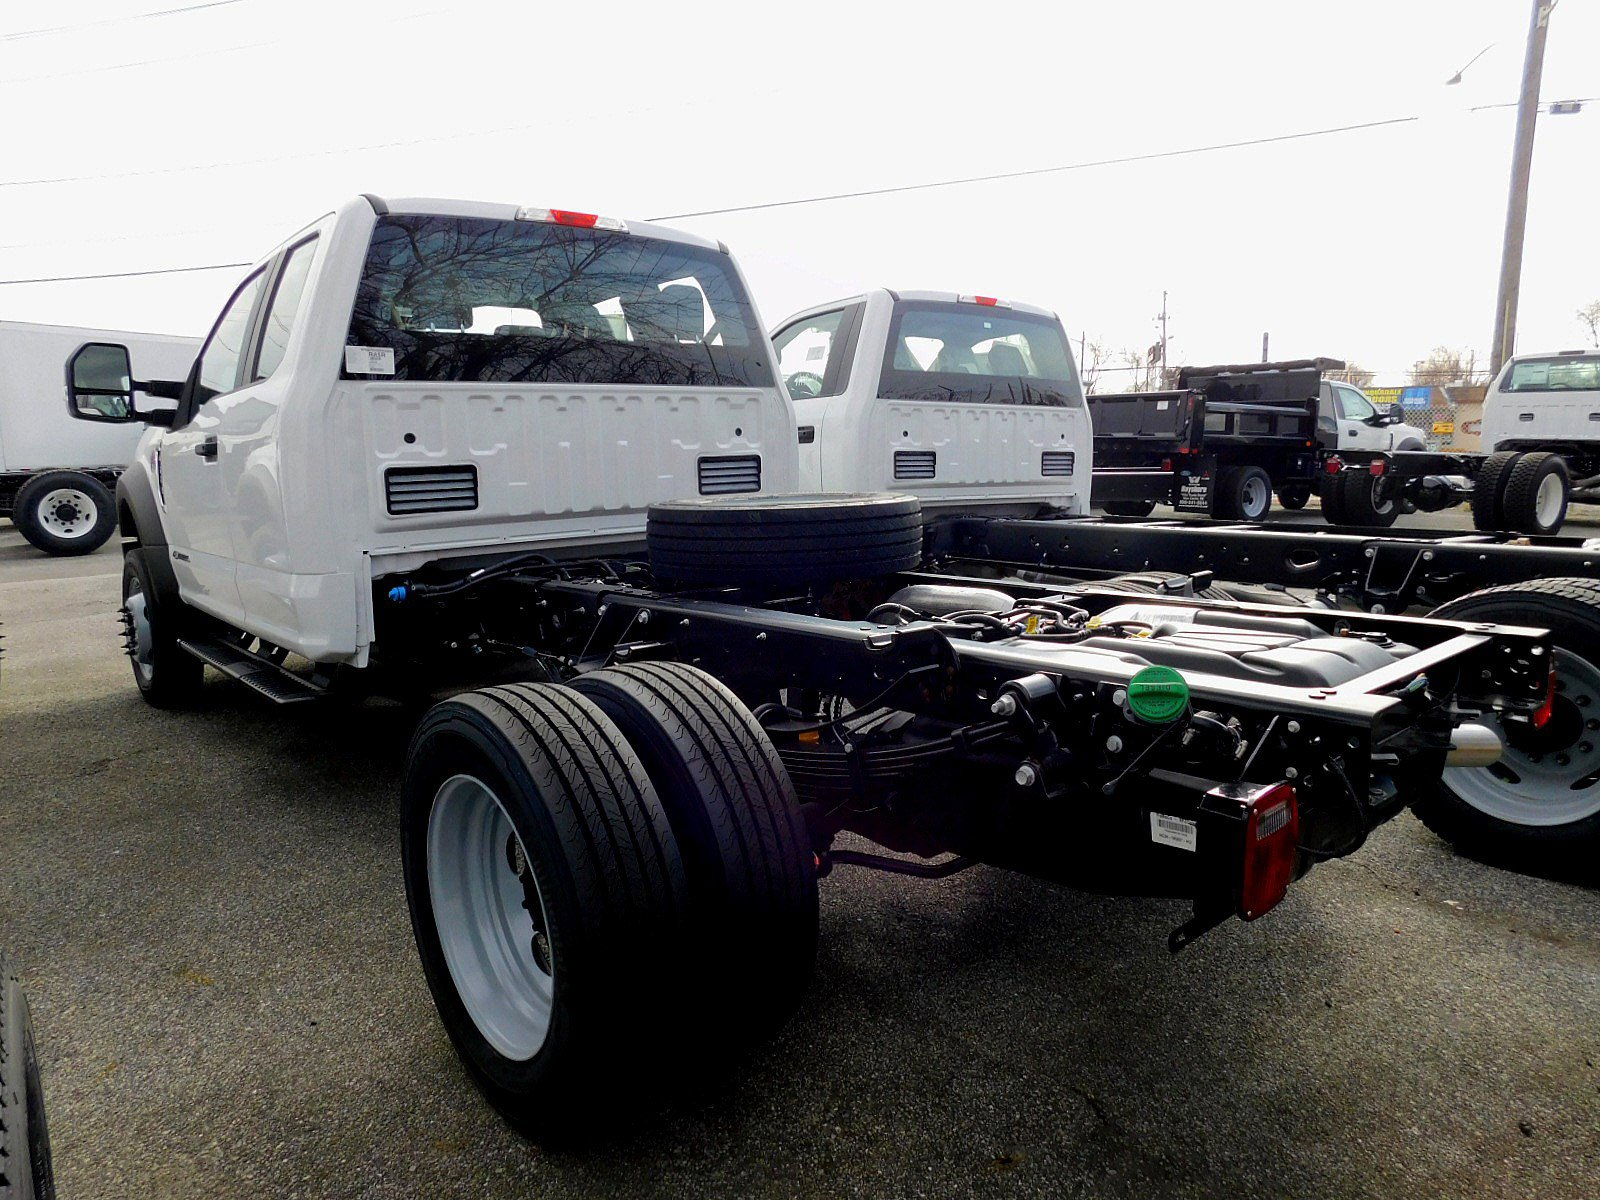 NEW 2019 FORD SUPER DUTY F-550 DRW TRUCK, CAB CHASSIS TRUCK #7010-3